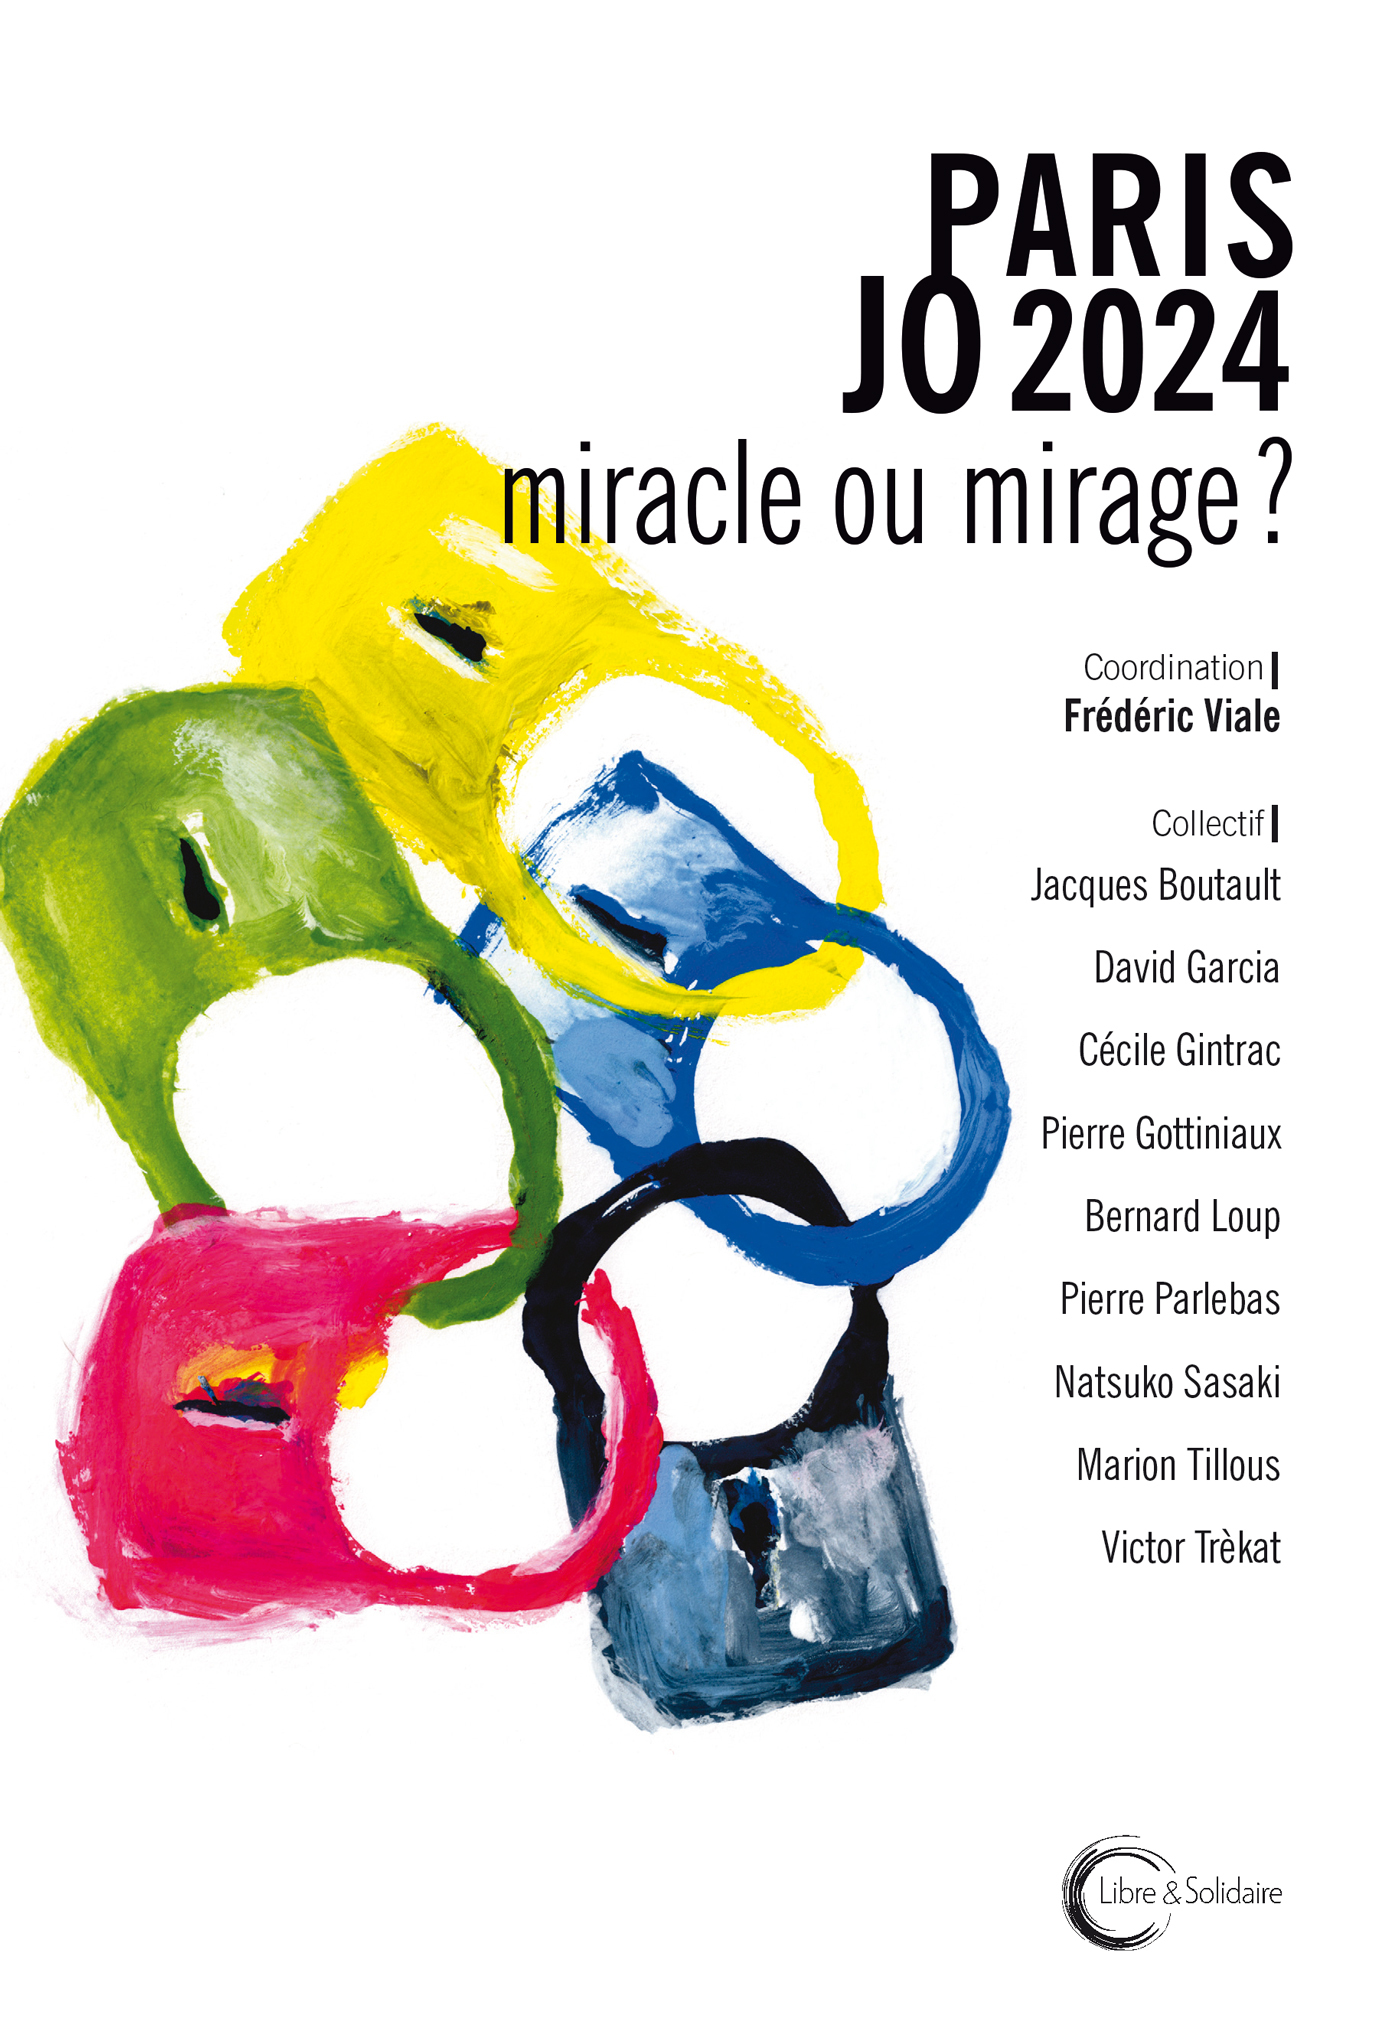 PARIS JO 2024 : MIRACLE OU MIRAGE ?